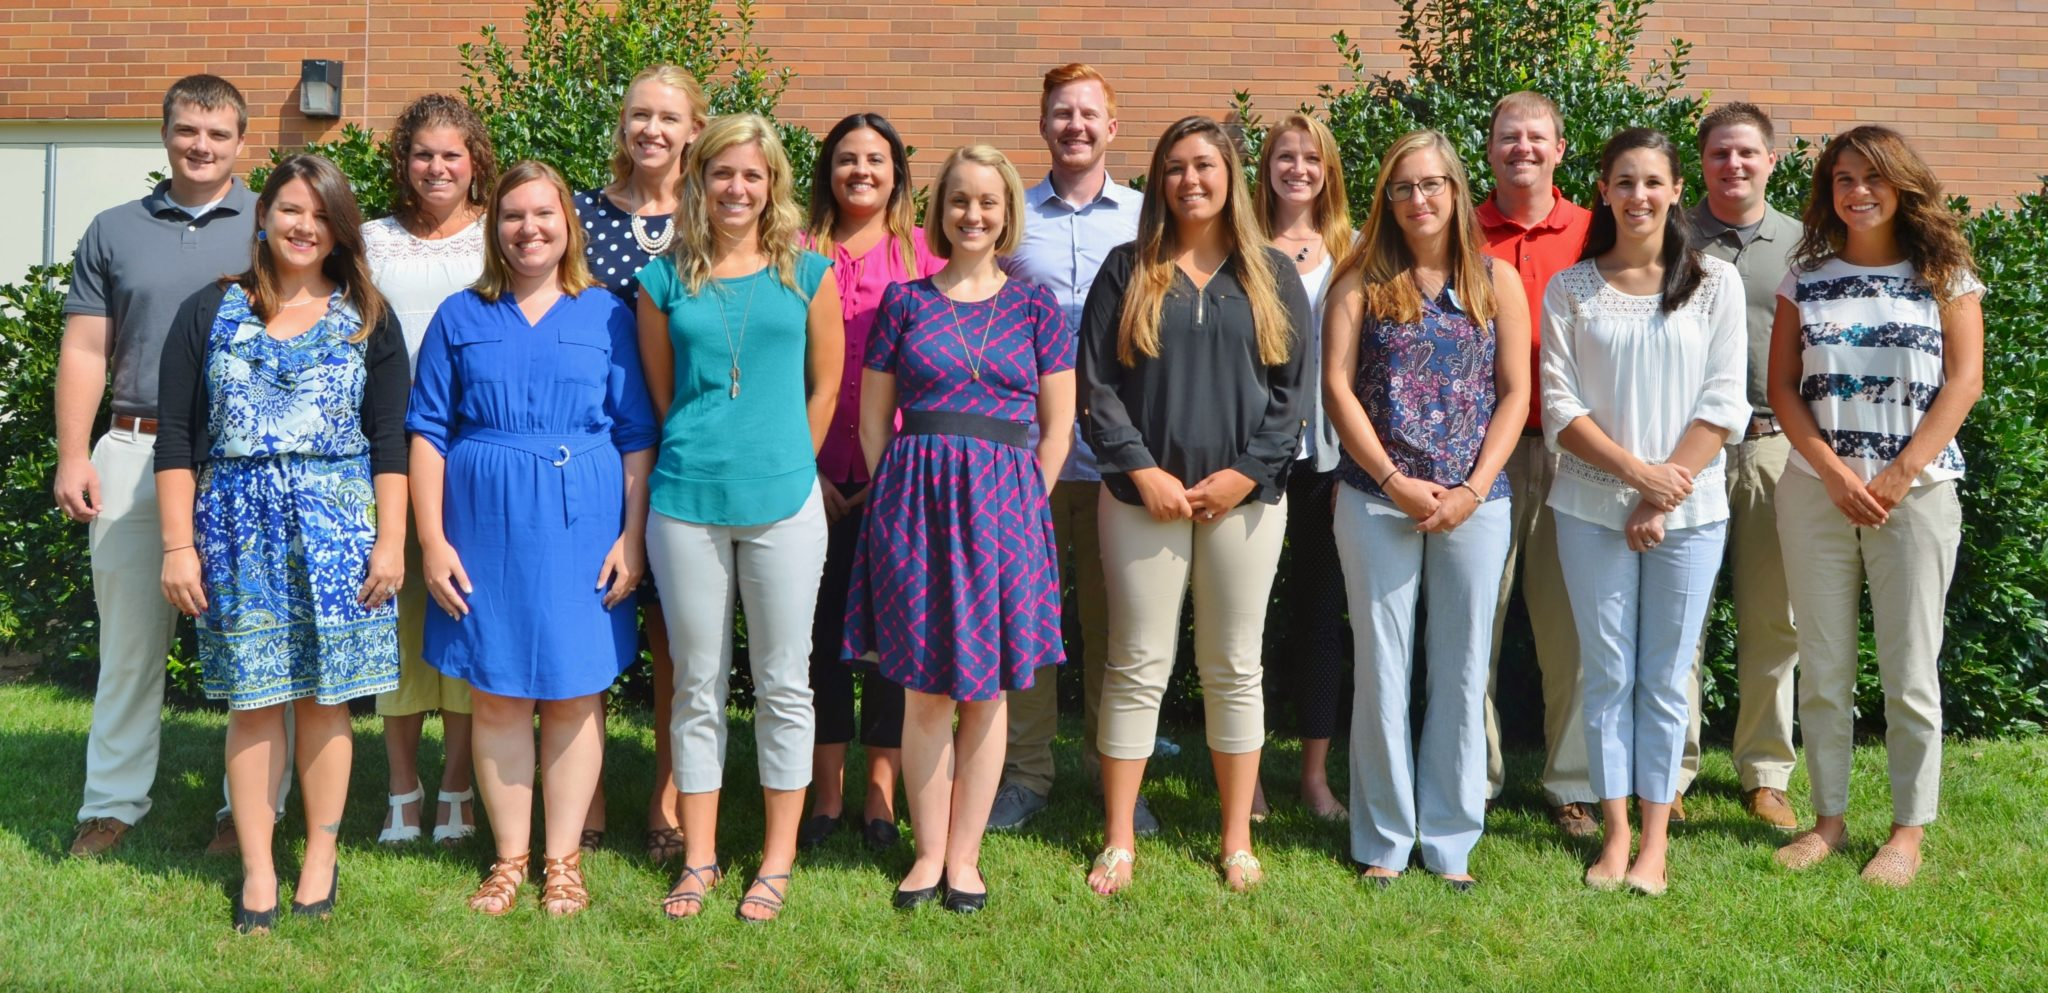 Penn Manor welcomes 22 new professional staff – Penn Manor ...